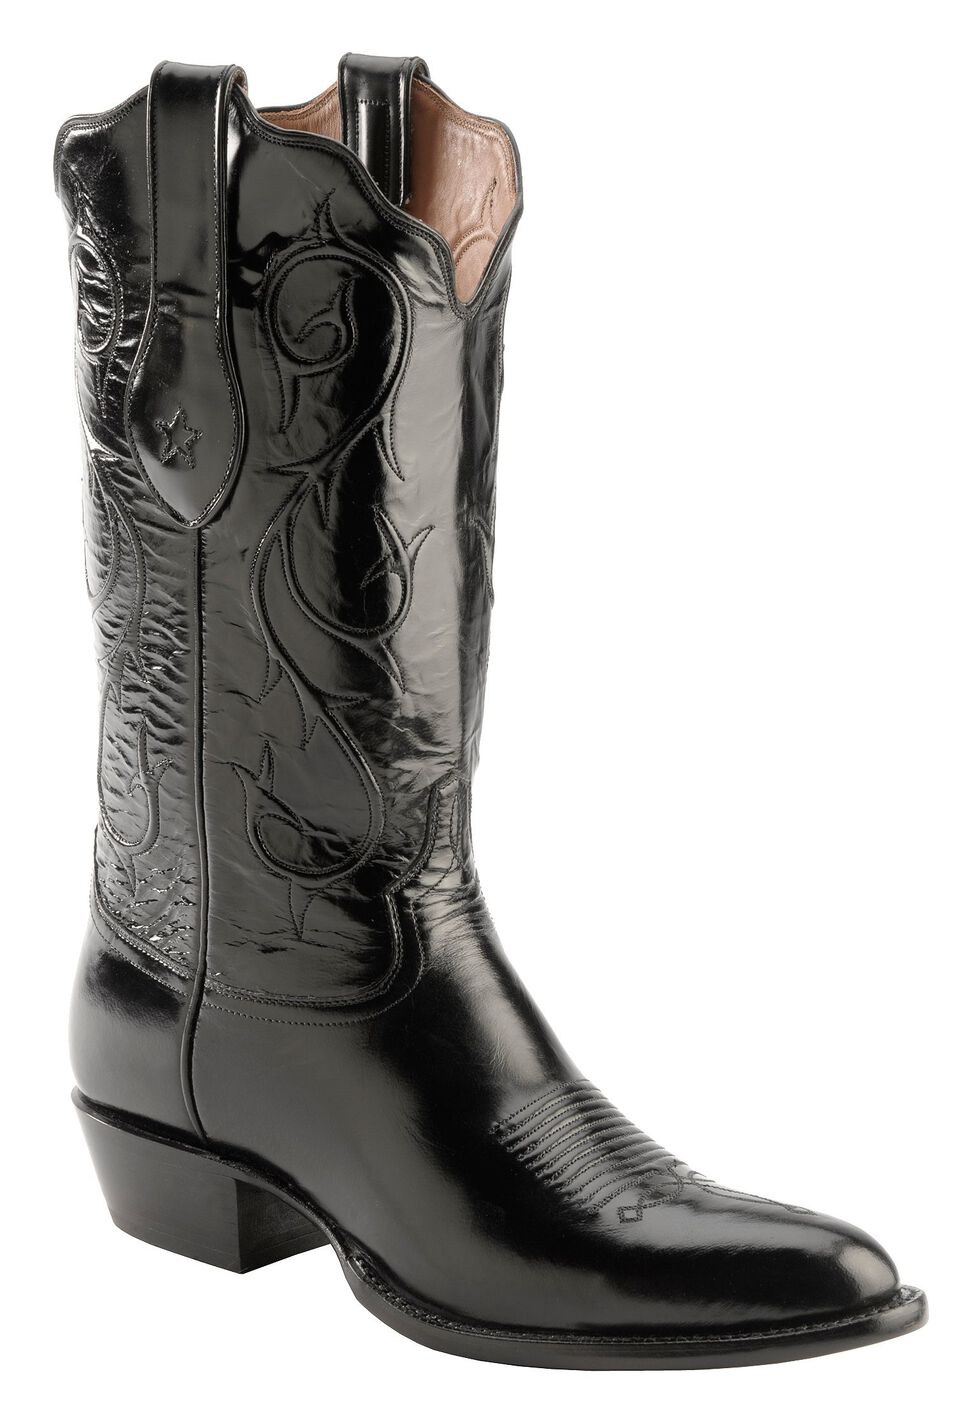 Tony Lama Signature Series Brushed Goat Cowboy Boots - Medium Toe, Black, hi-res